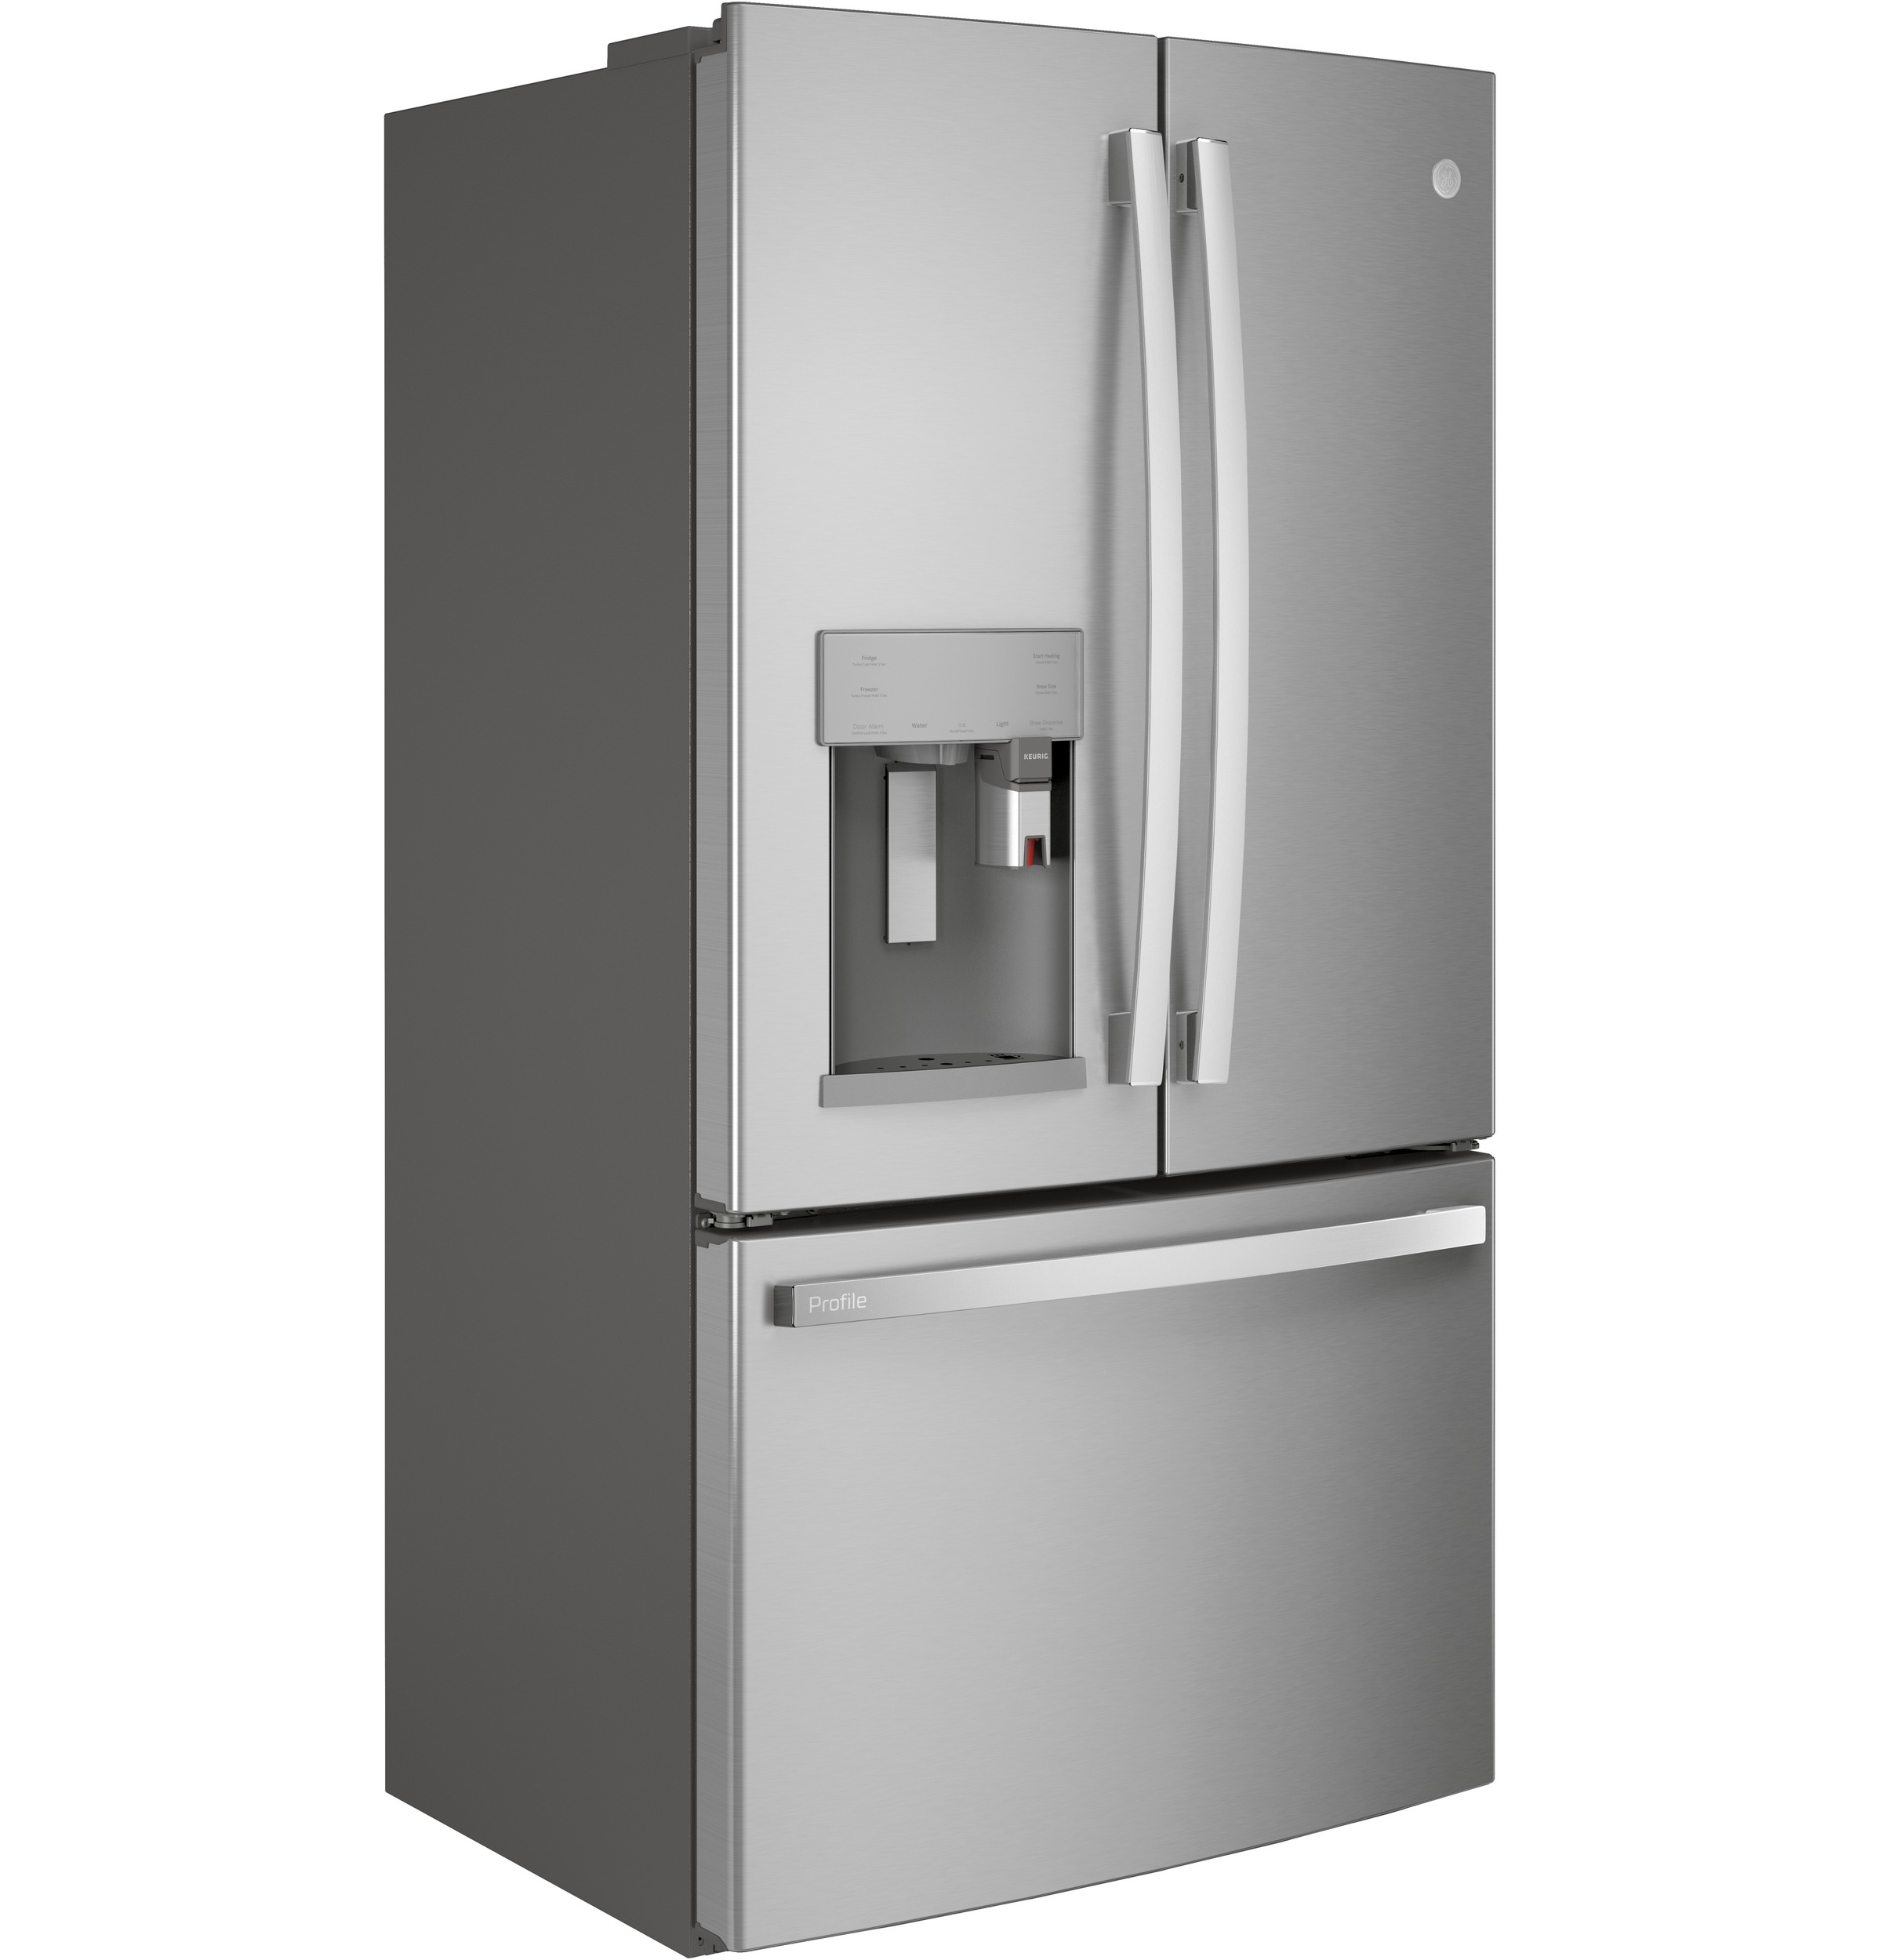 Model: PFE28PYNFS | GE Profile GE Profile™ Series ENERGY STAR® 27.7 Cu. Ft. Smart French-Door Refrigerator with Keurig® K-Cup® Brewing System